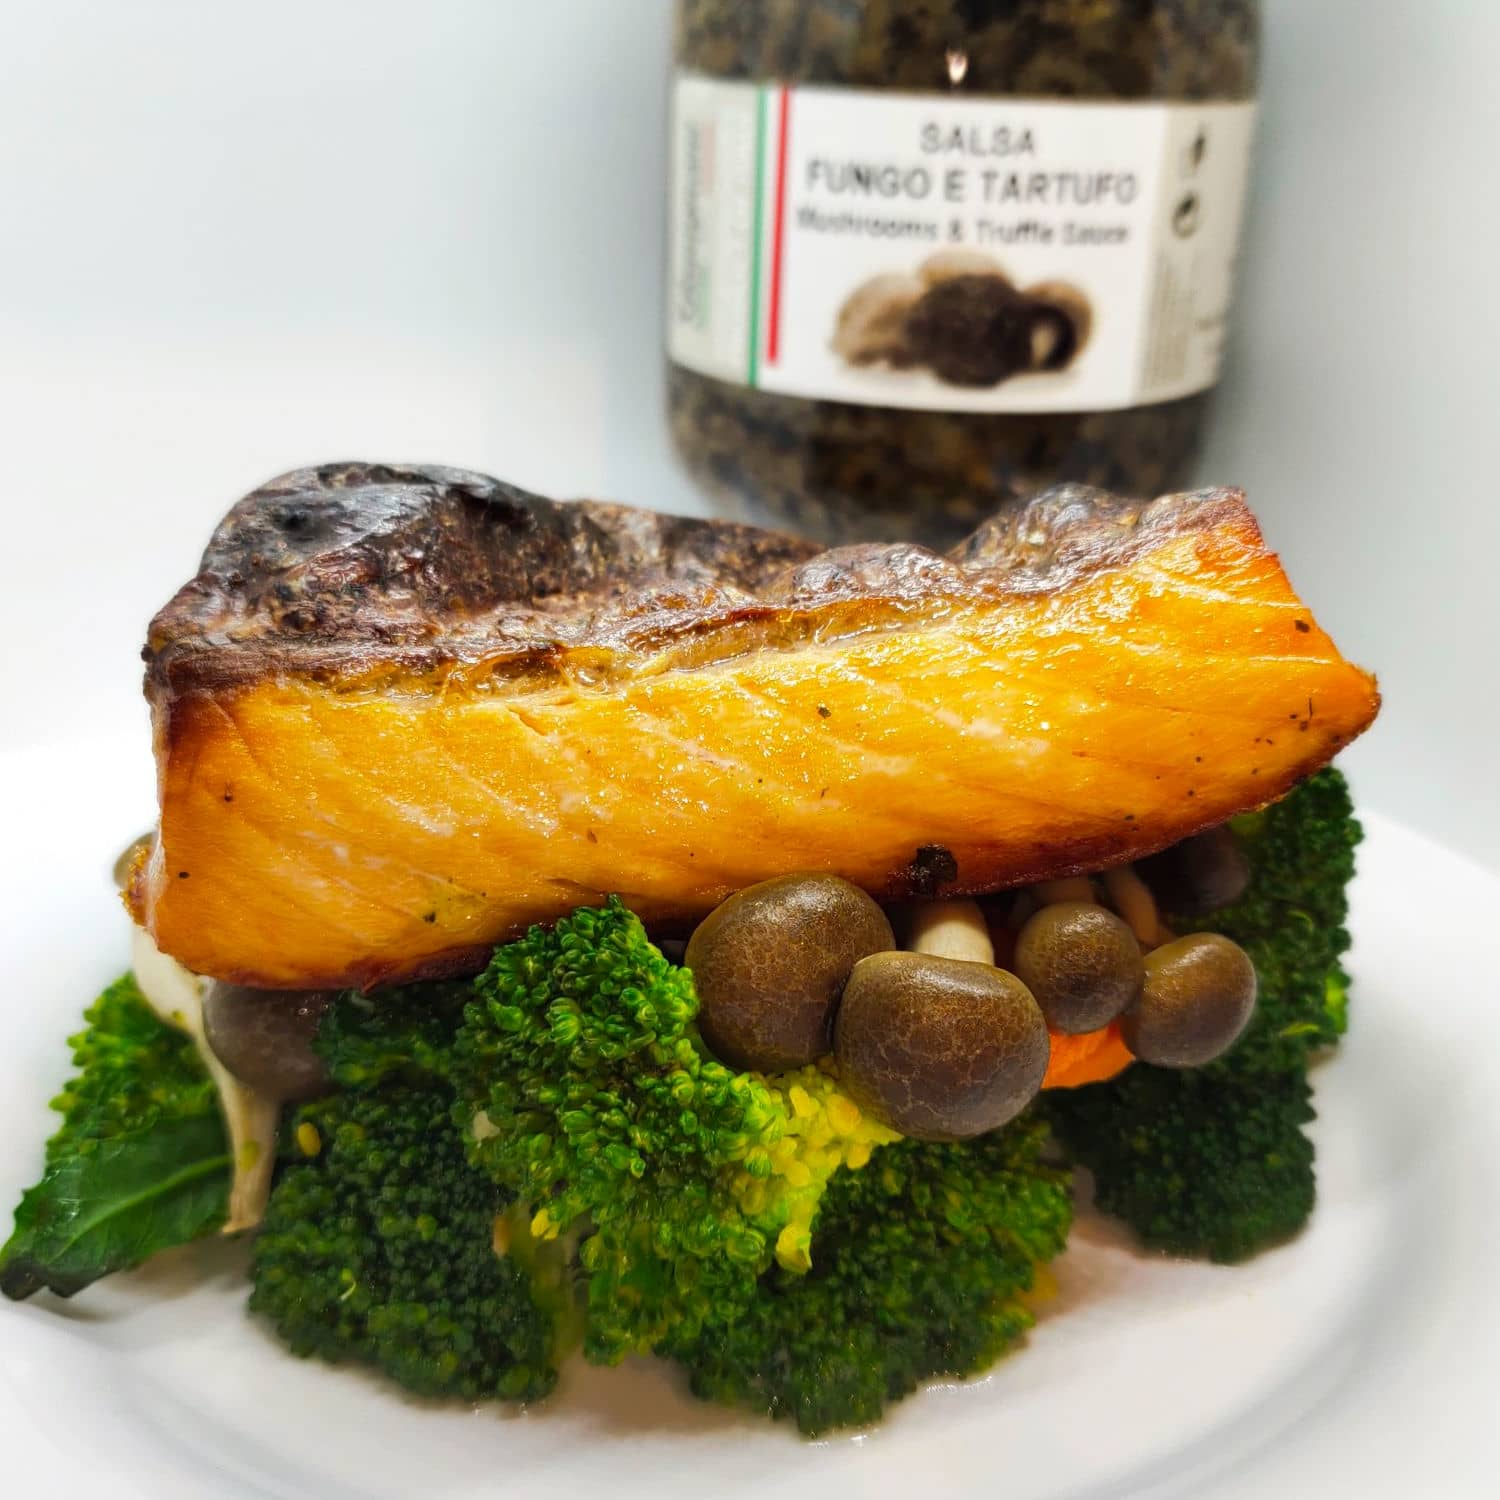 1 x Baked Salmon (Truffle Sauce) with Mixed Vegetables or Spaghetti + Single Scoop Gelato